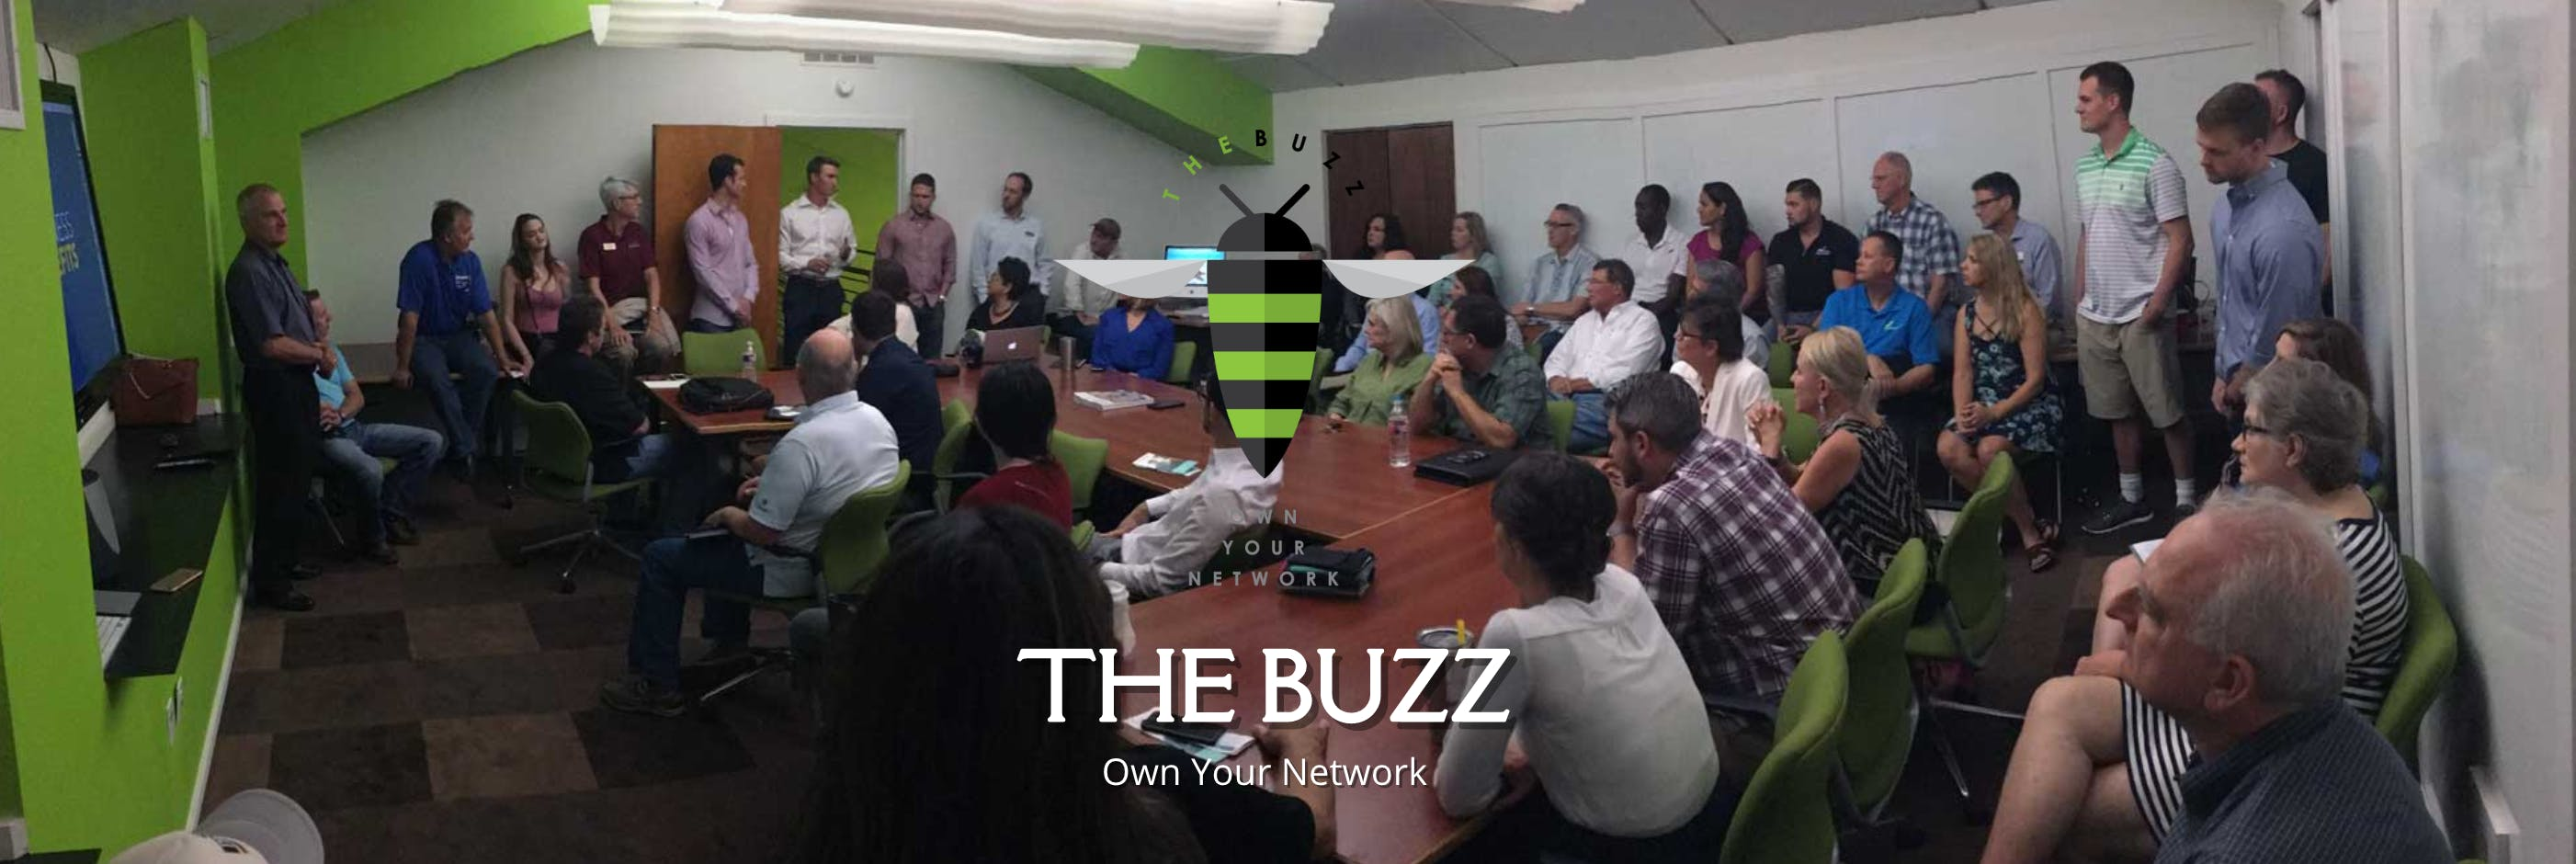 The Buzz Jax - The Network that Pays